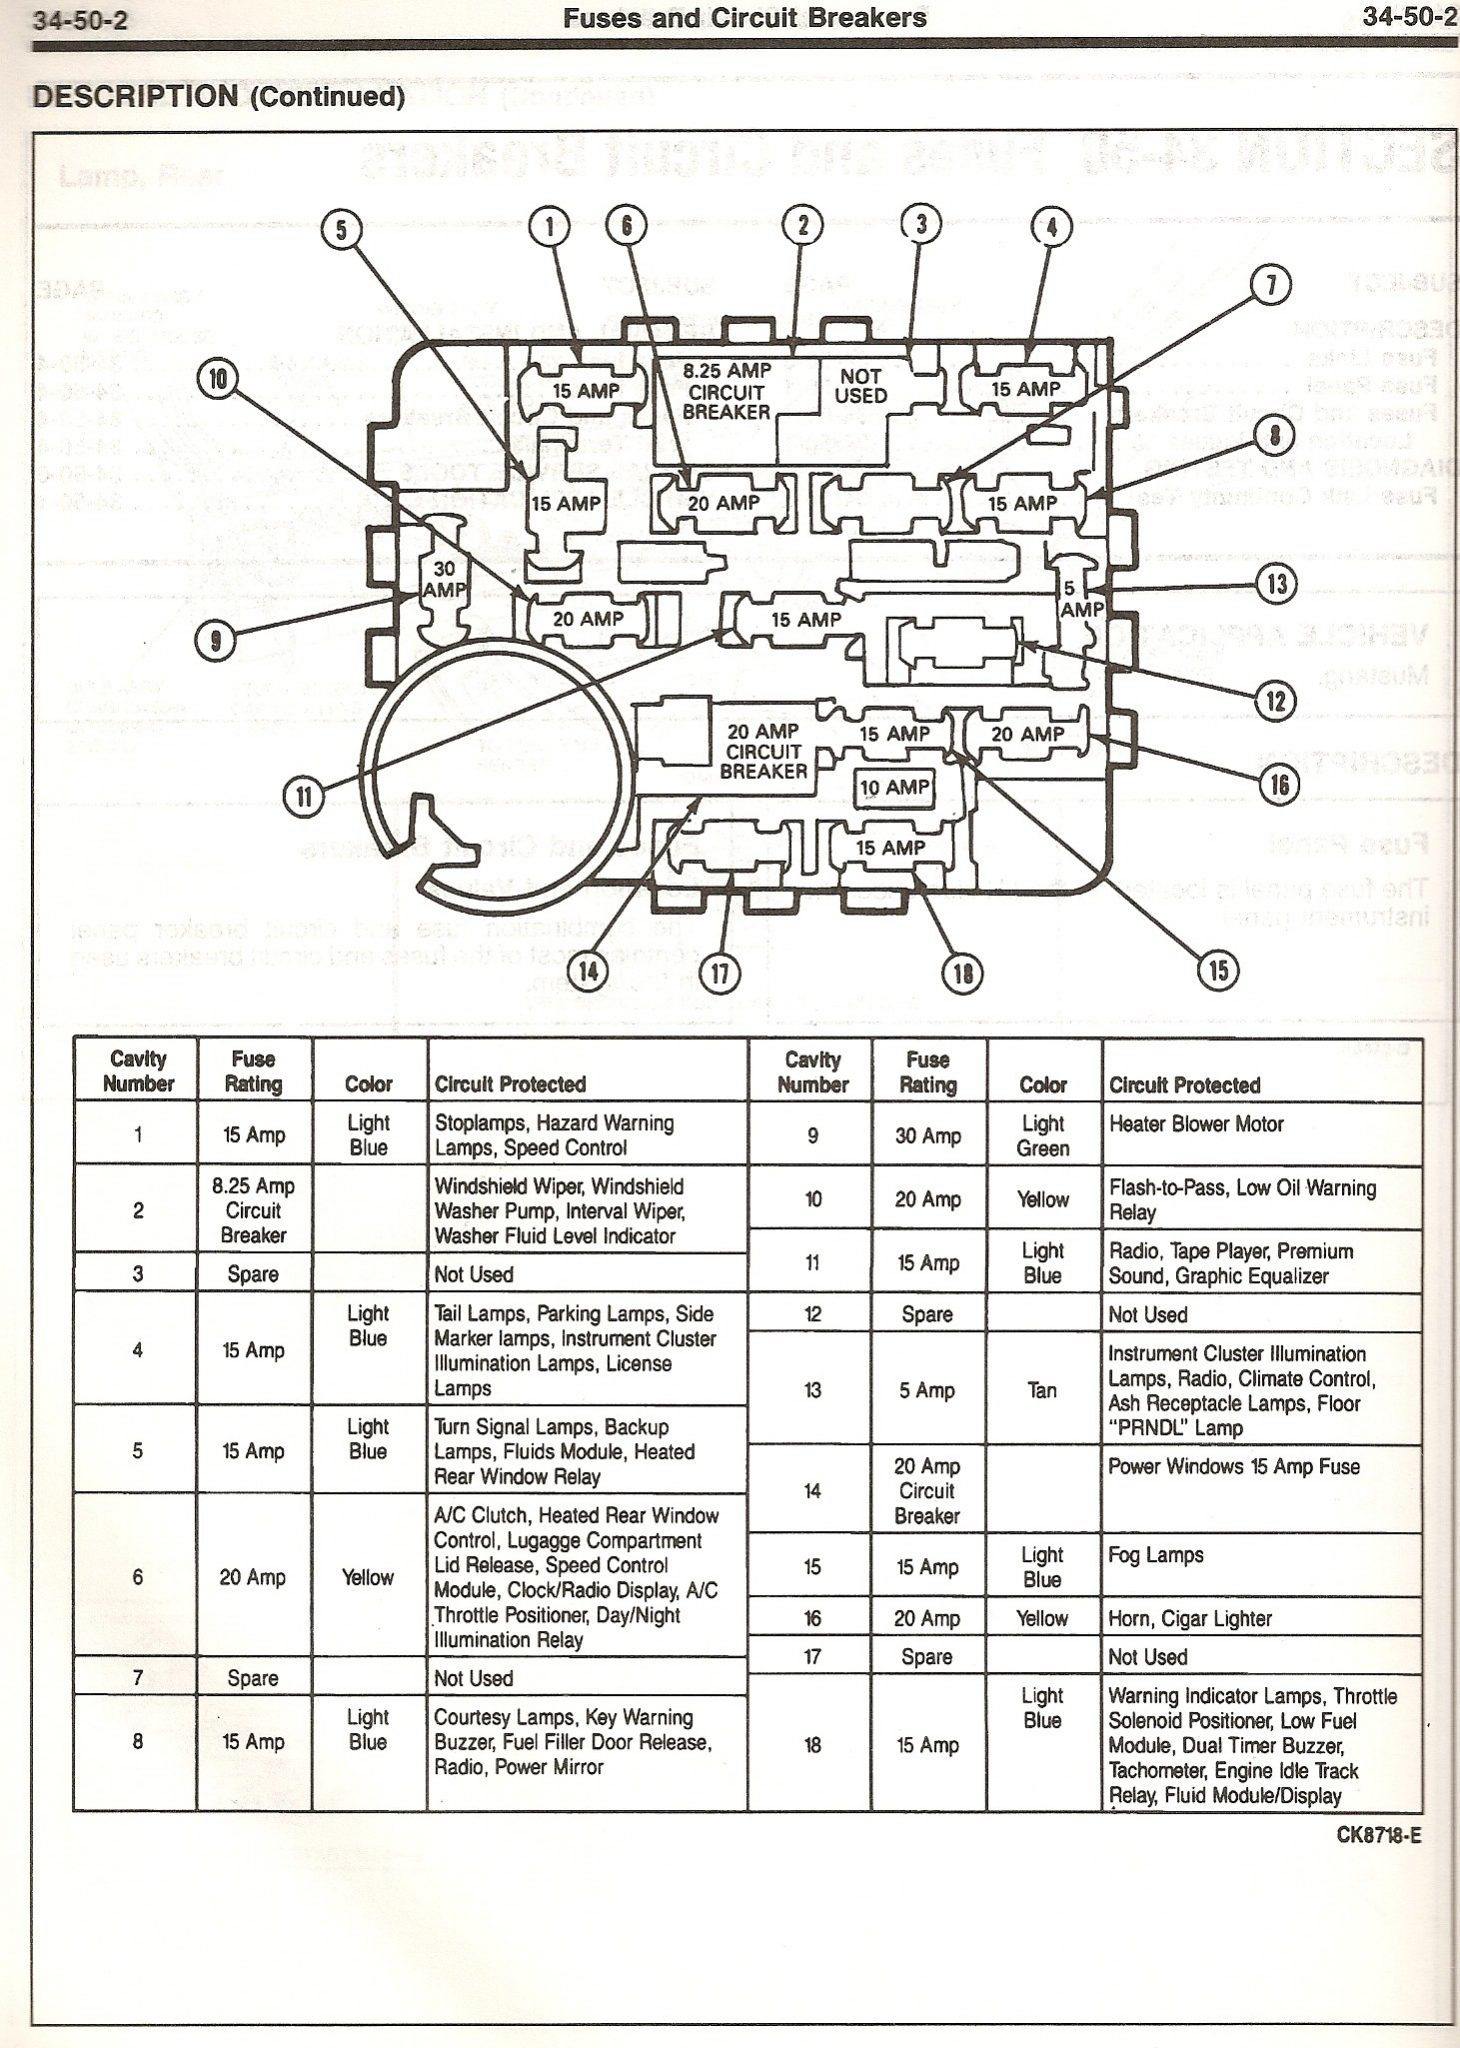 fusebox diagram for 89 lincoln towncar wiring diagrams 1990 mustang wiring schematic wiring diagram data  1990 mustang wiring schematic wiring